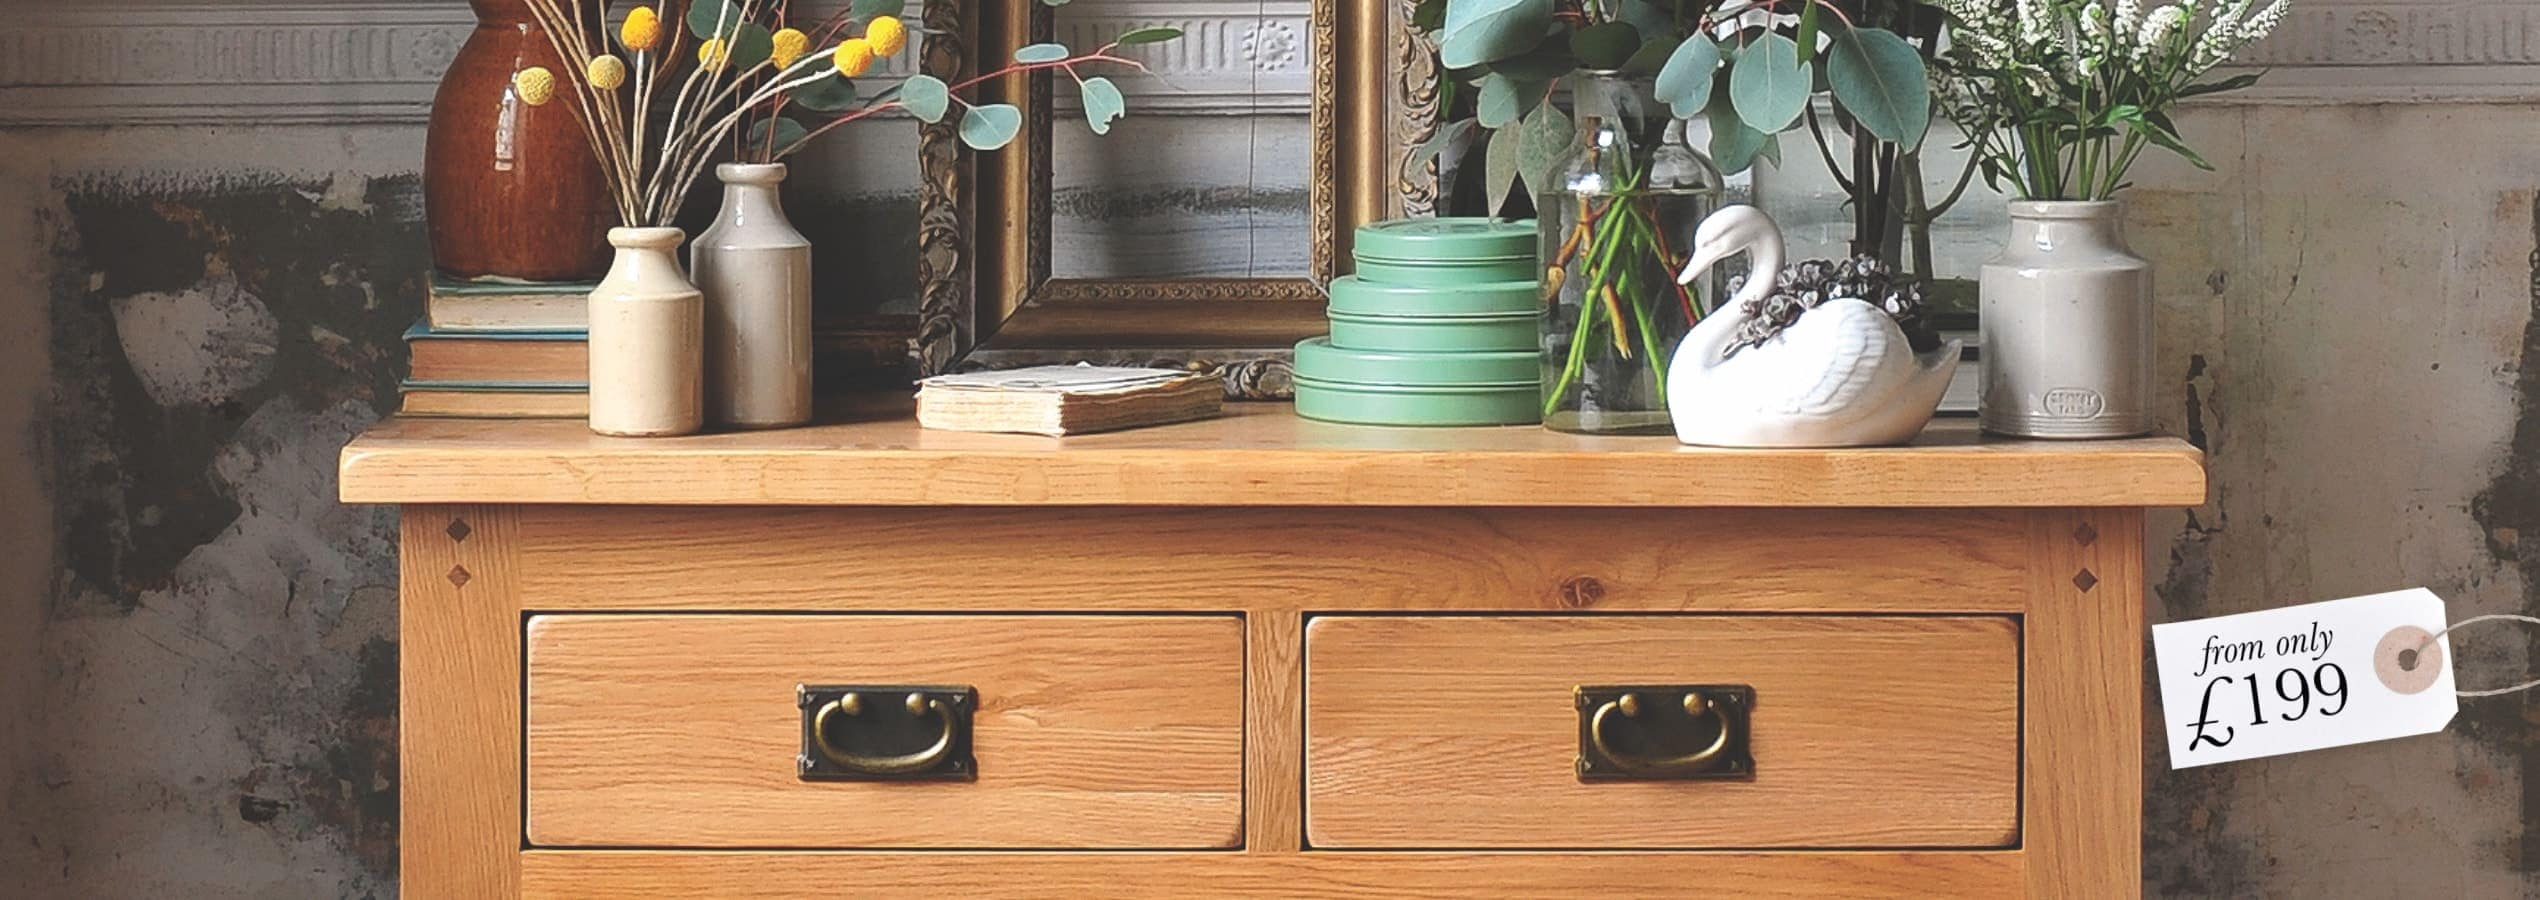 Sturdy Storage - Traditional oak storage solutions you can rely on!